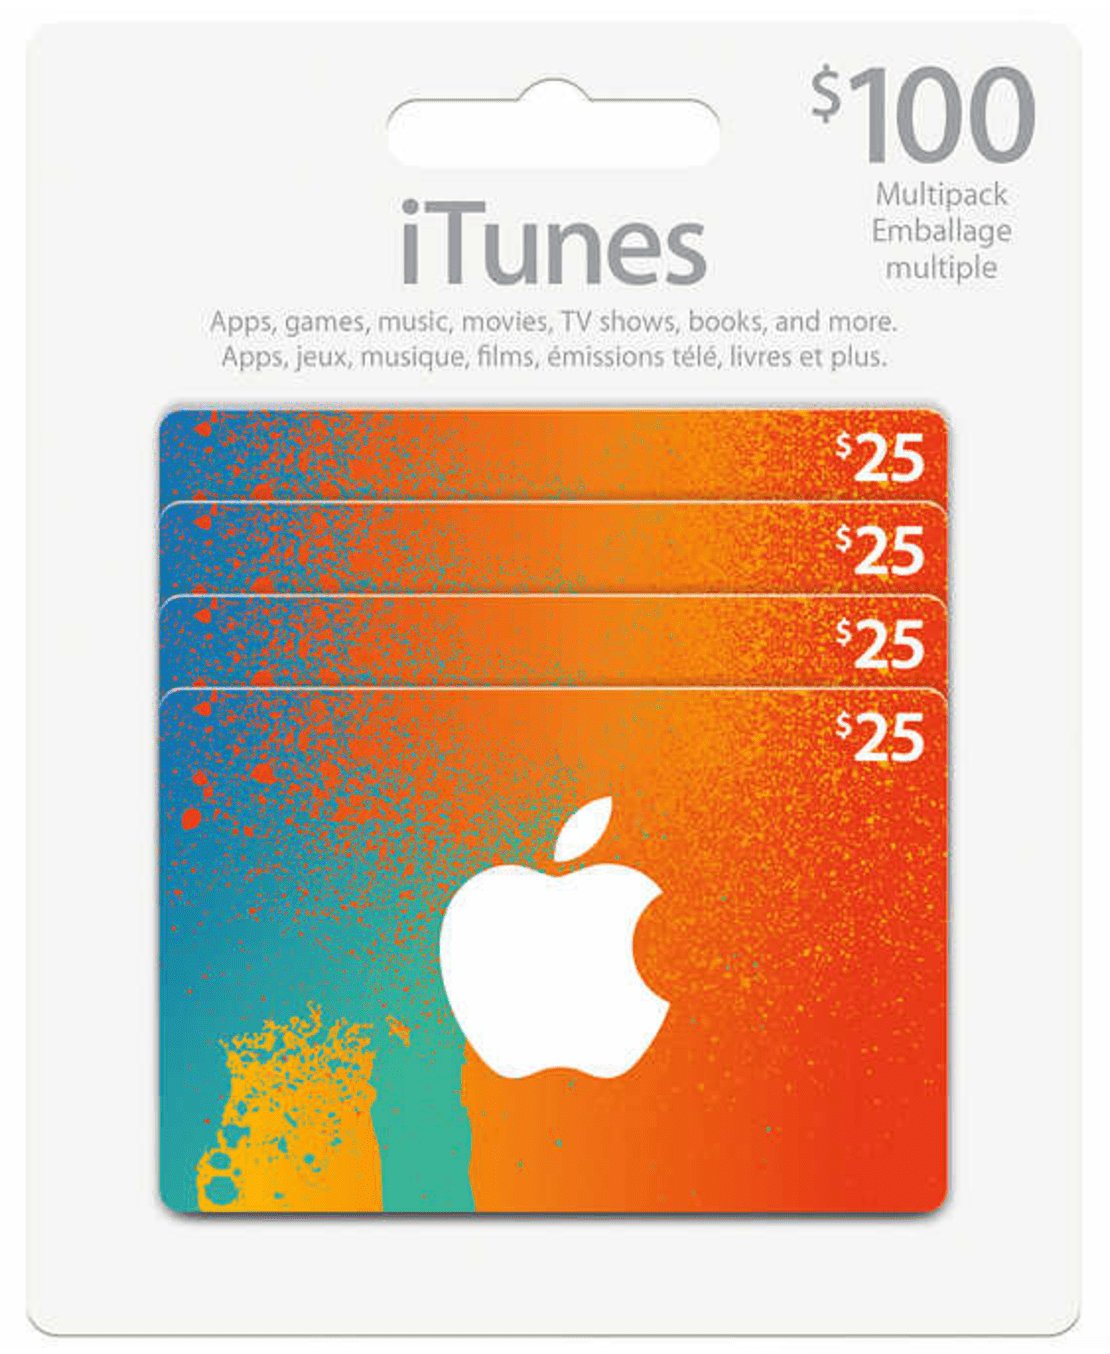 Costco Canada Black Friday Deal: $83.99 for $100 Multipack iTunes Cards with Free Shipping